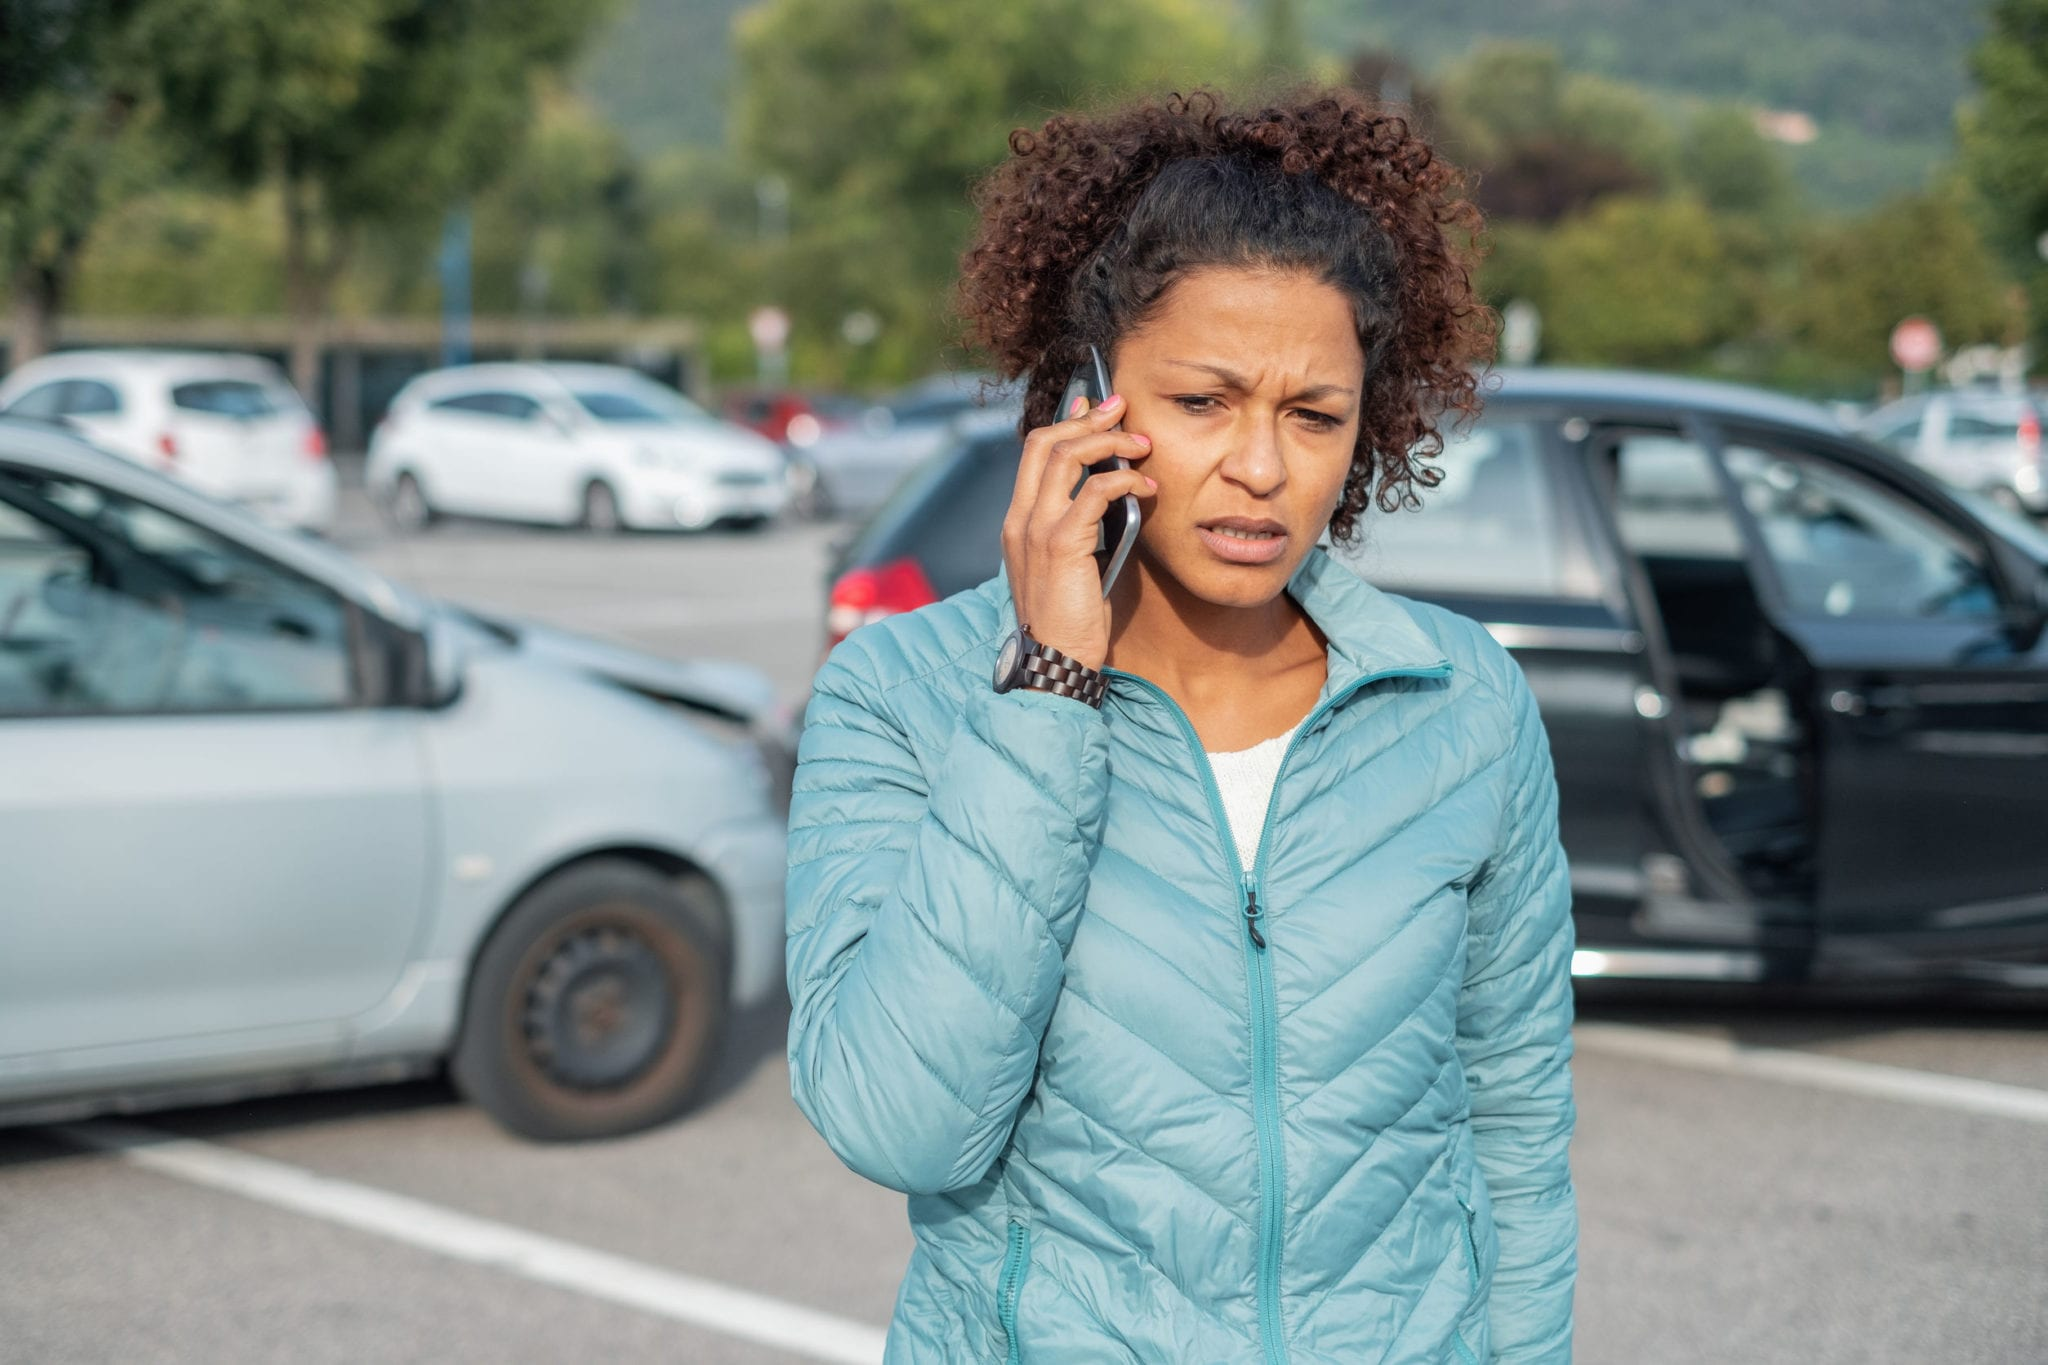 Determining Fault Following a Parking Lot Accident in Texas